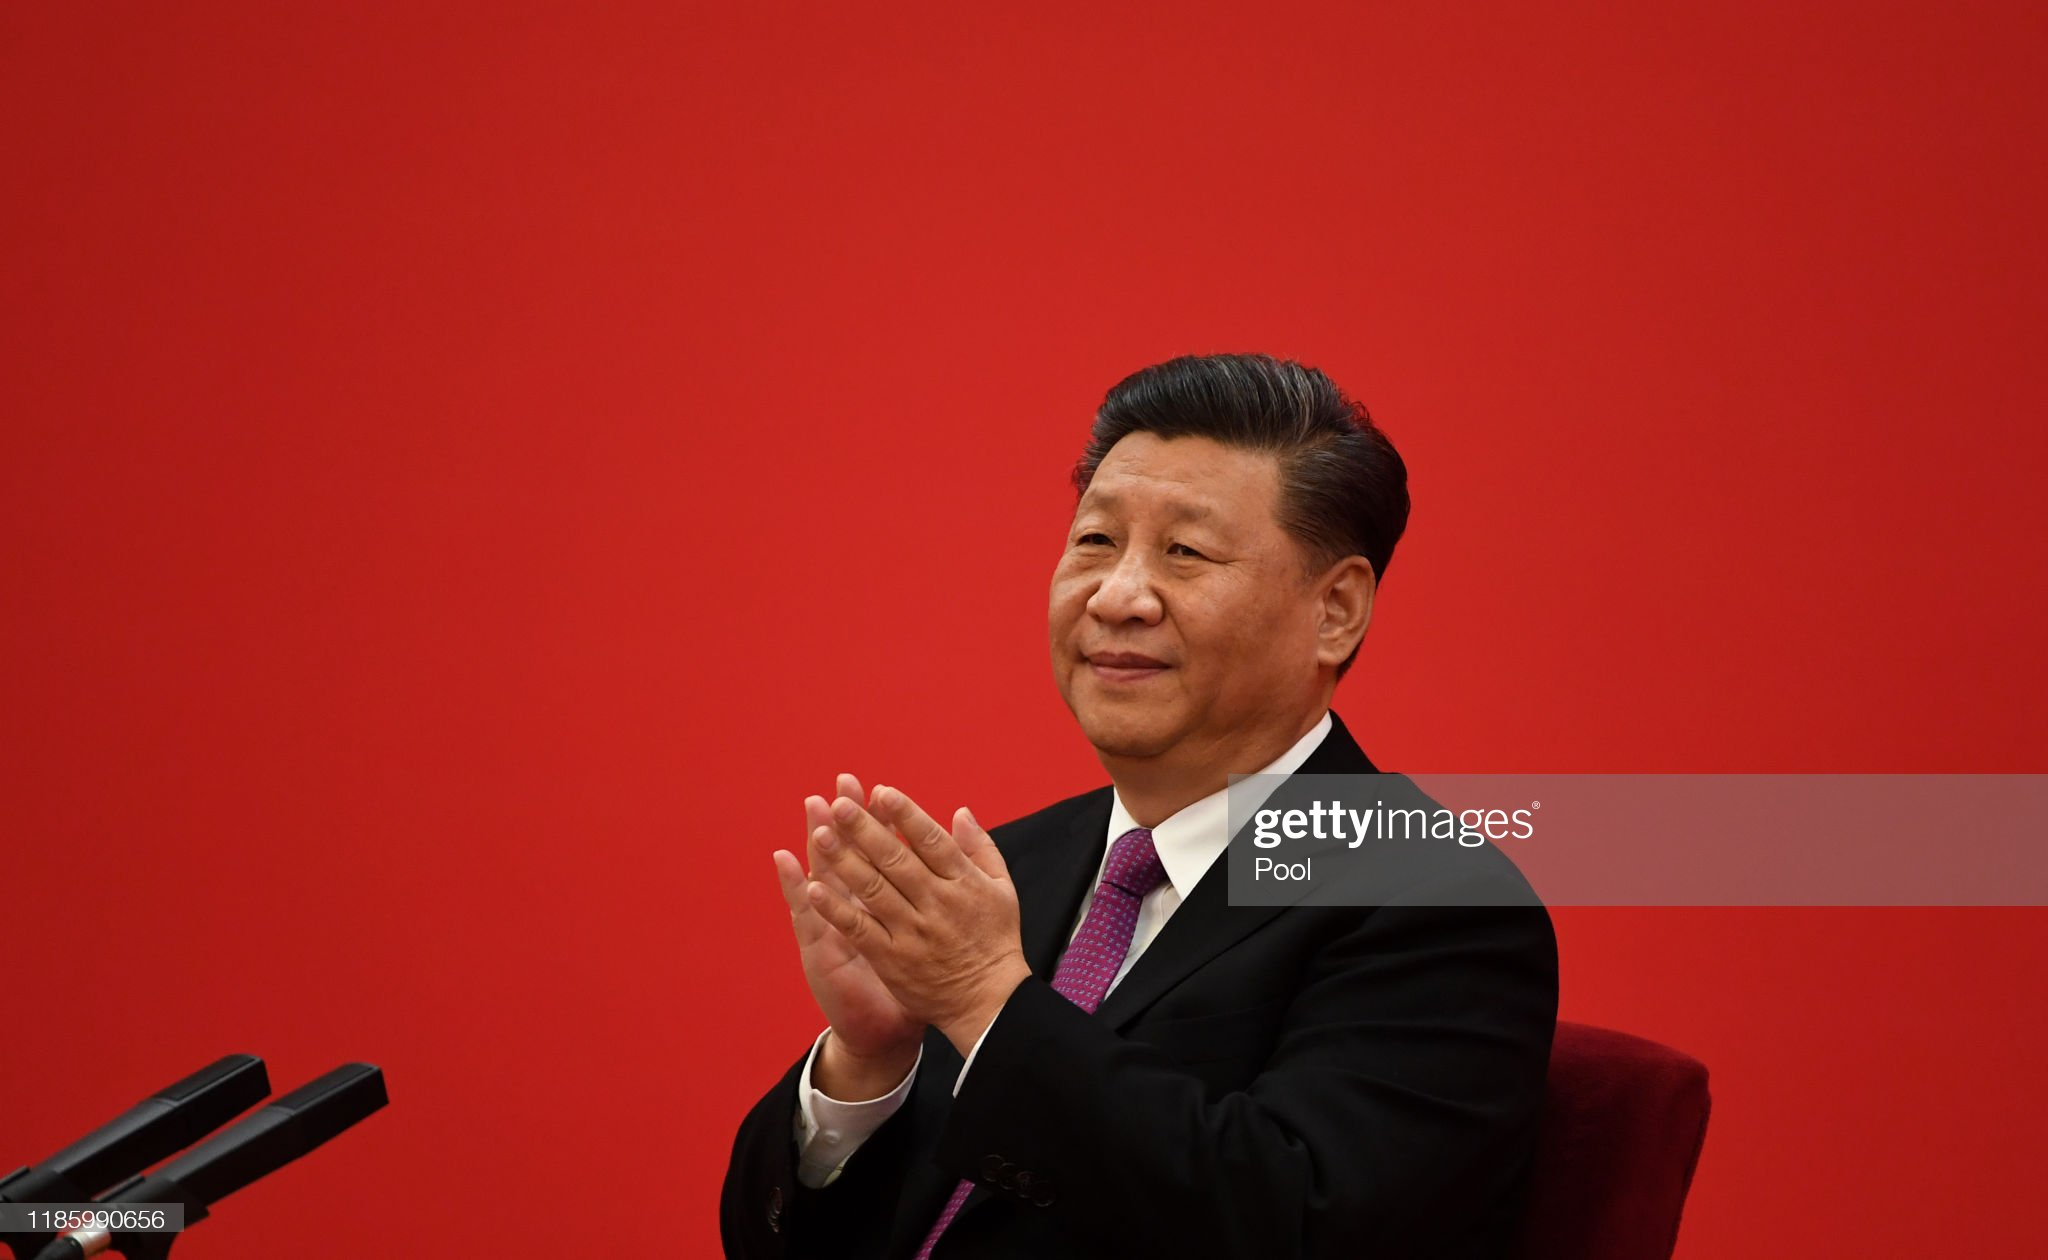 Chinese President Xi Jinping Speaks With Russian President Vladimir Putin Via Video Link : News Photo